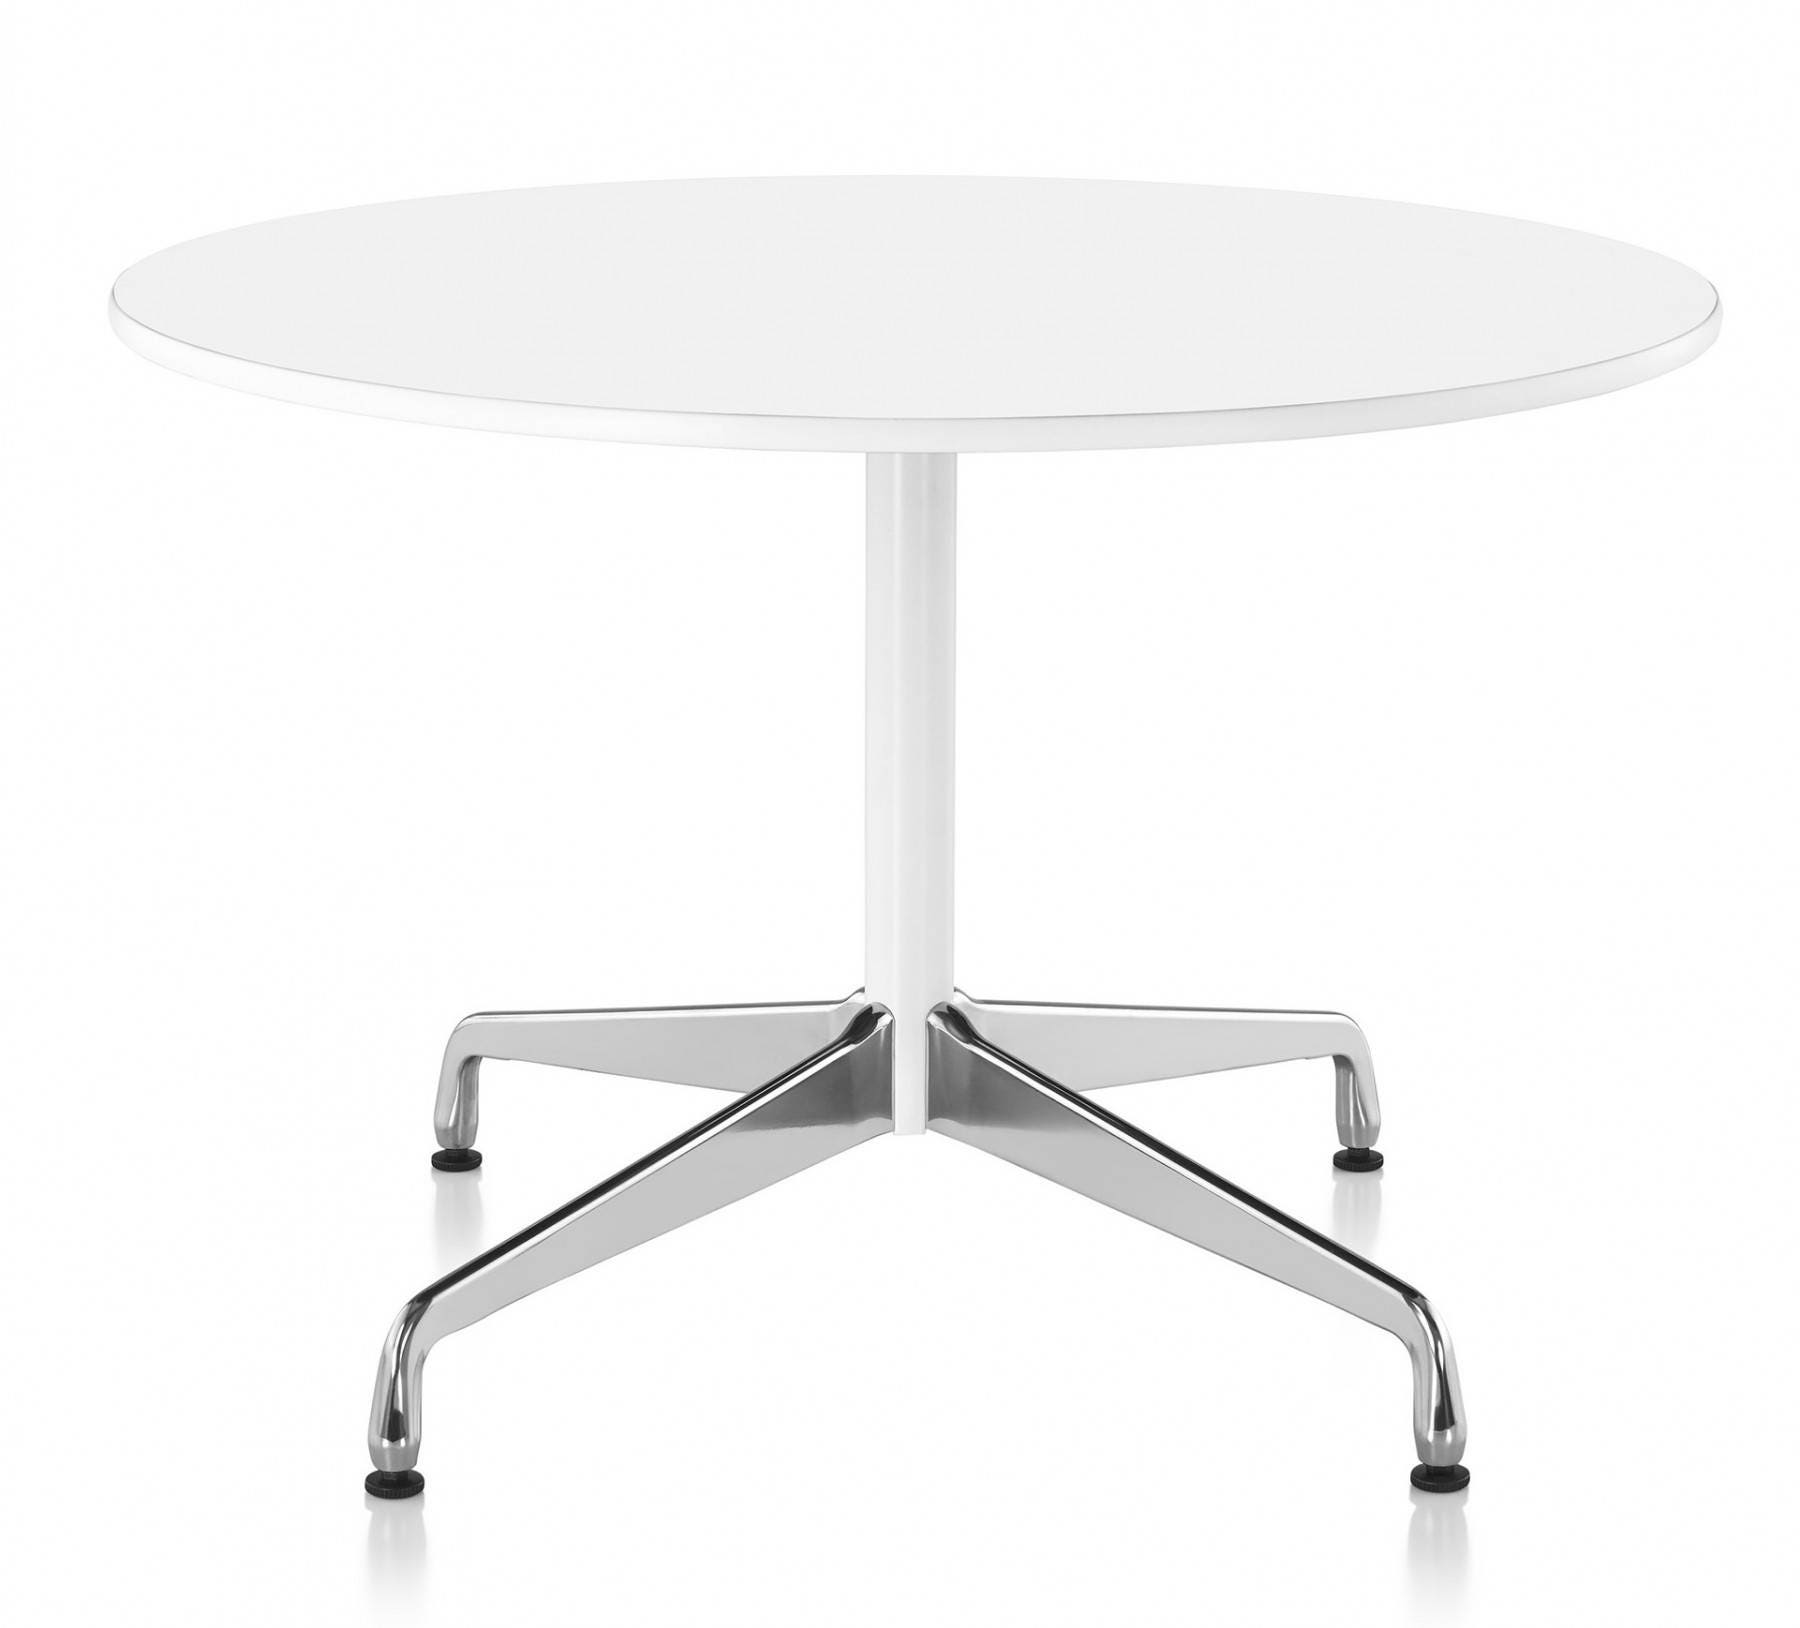 Herman Miller Eames Conference Table Round GR Shop Canada - Eames oval conference table